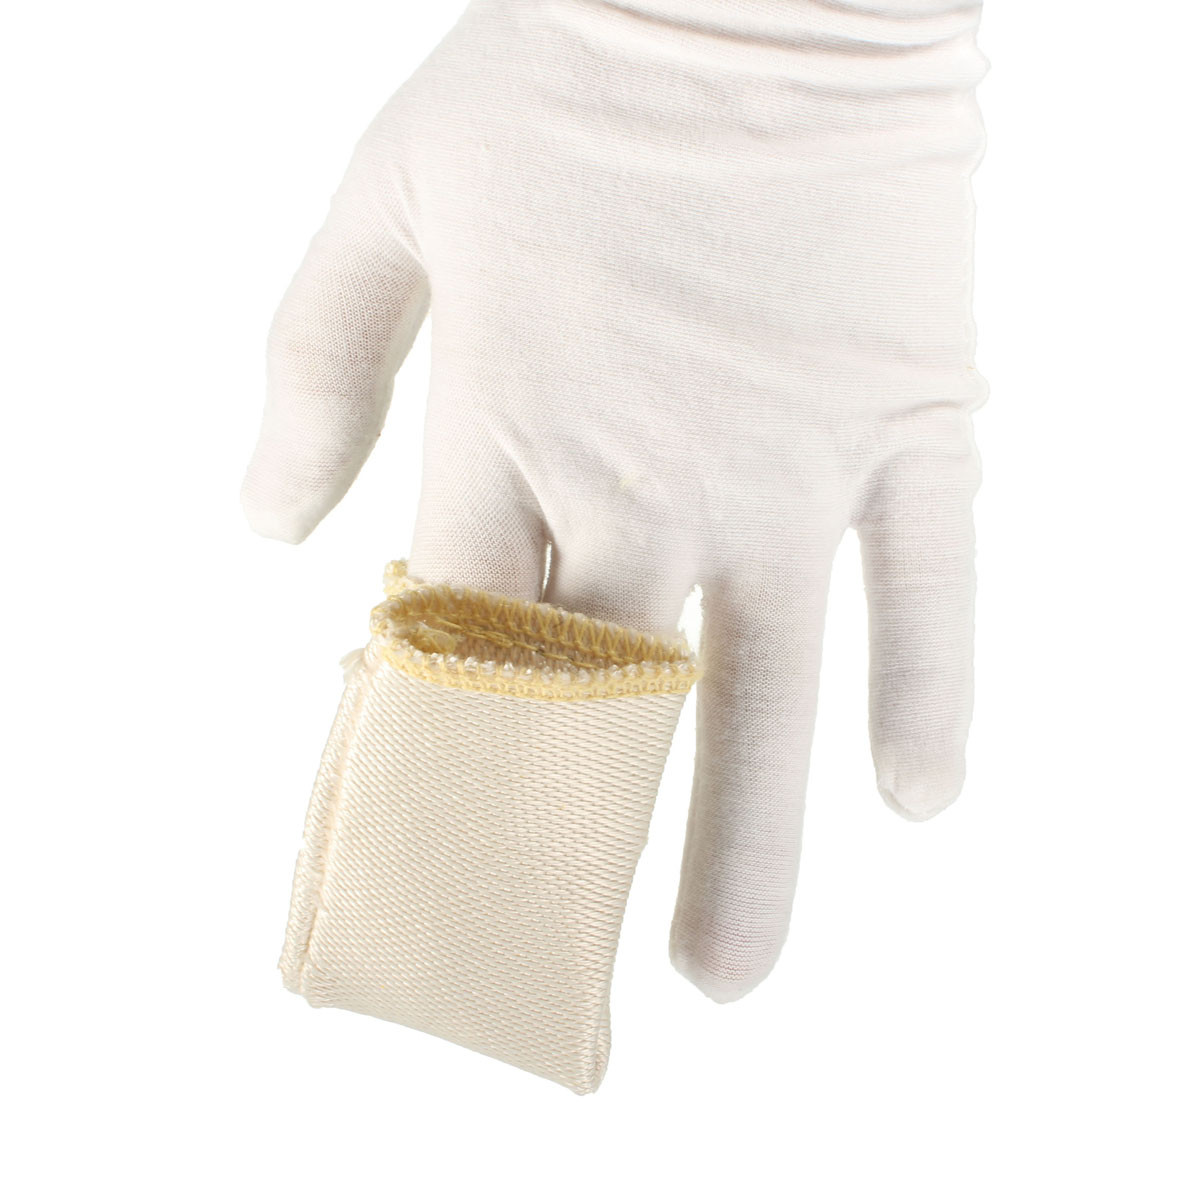 NEW Safurance Finger Glass Fiber Gloves Heat Shield Guard Protection For Welding Soldering Workplace Safety tig finger glove combo welder tool glass fiber welding gloves heat shield guard heat protection equipment by weld monger